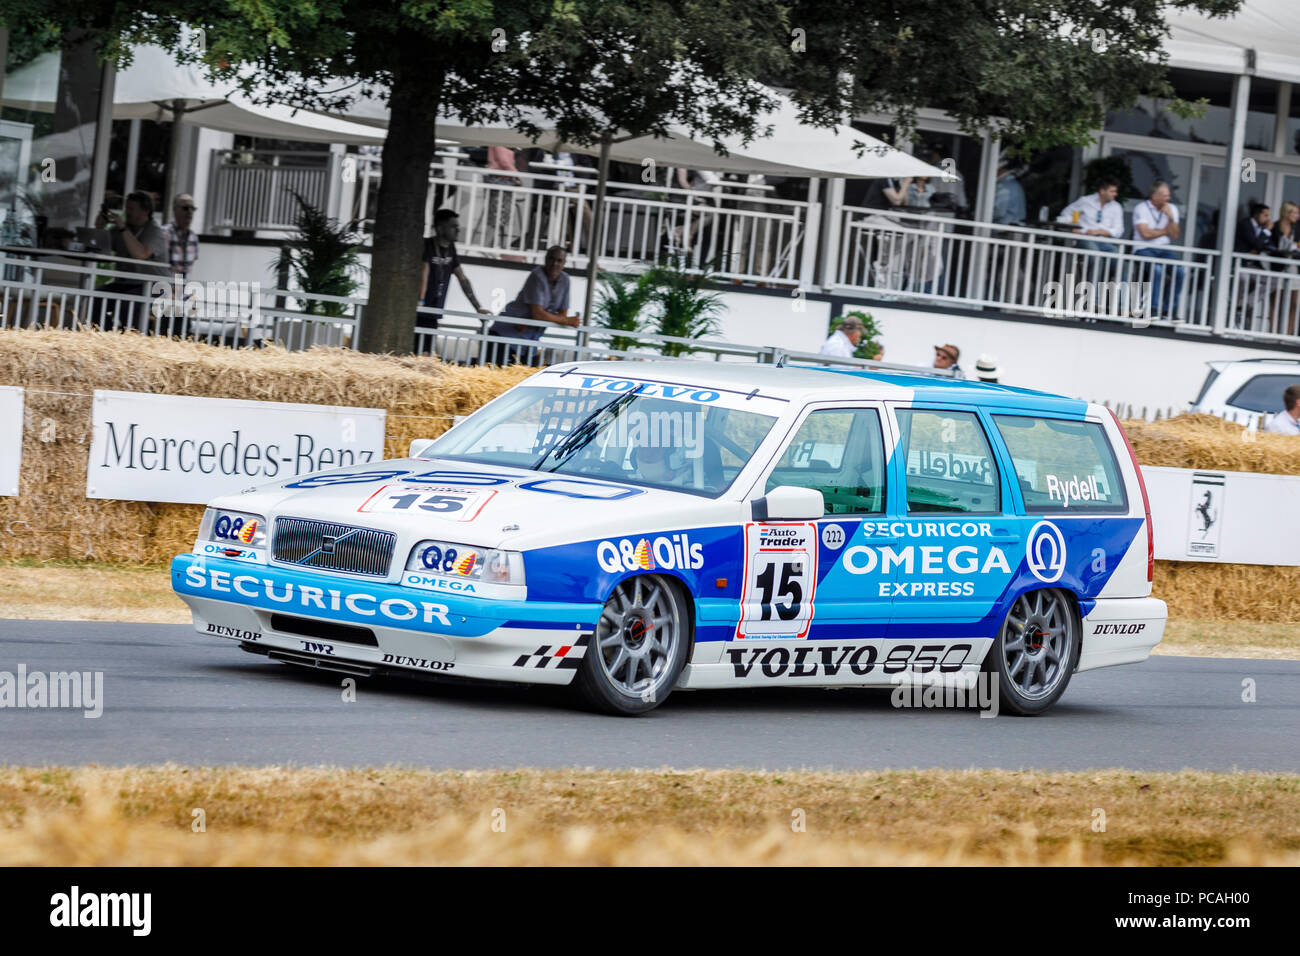 1994 Twr Volvo 850 Estate Originall Driven By Jan Lammers Here